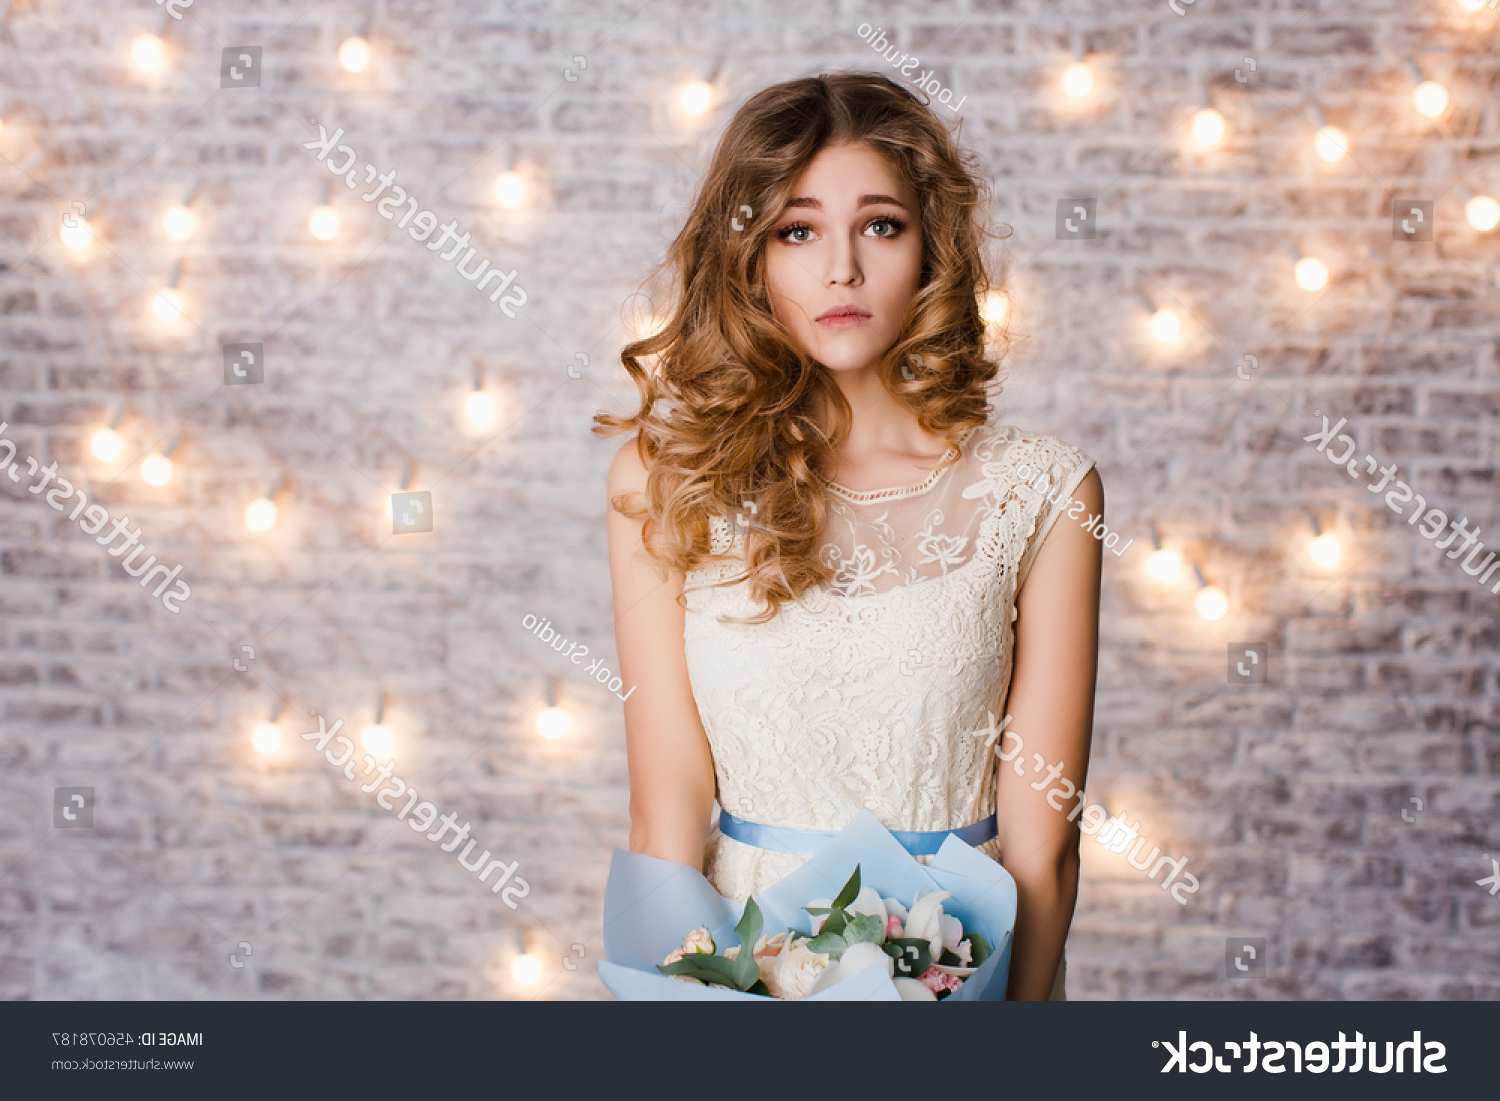 Latest Tender Shapely Curls Hairstyles For A Romantic Wedding Look Within Cute Tender Slim Girl Blond Curly Stock Photo (edit Now) (View 15 of 20)